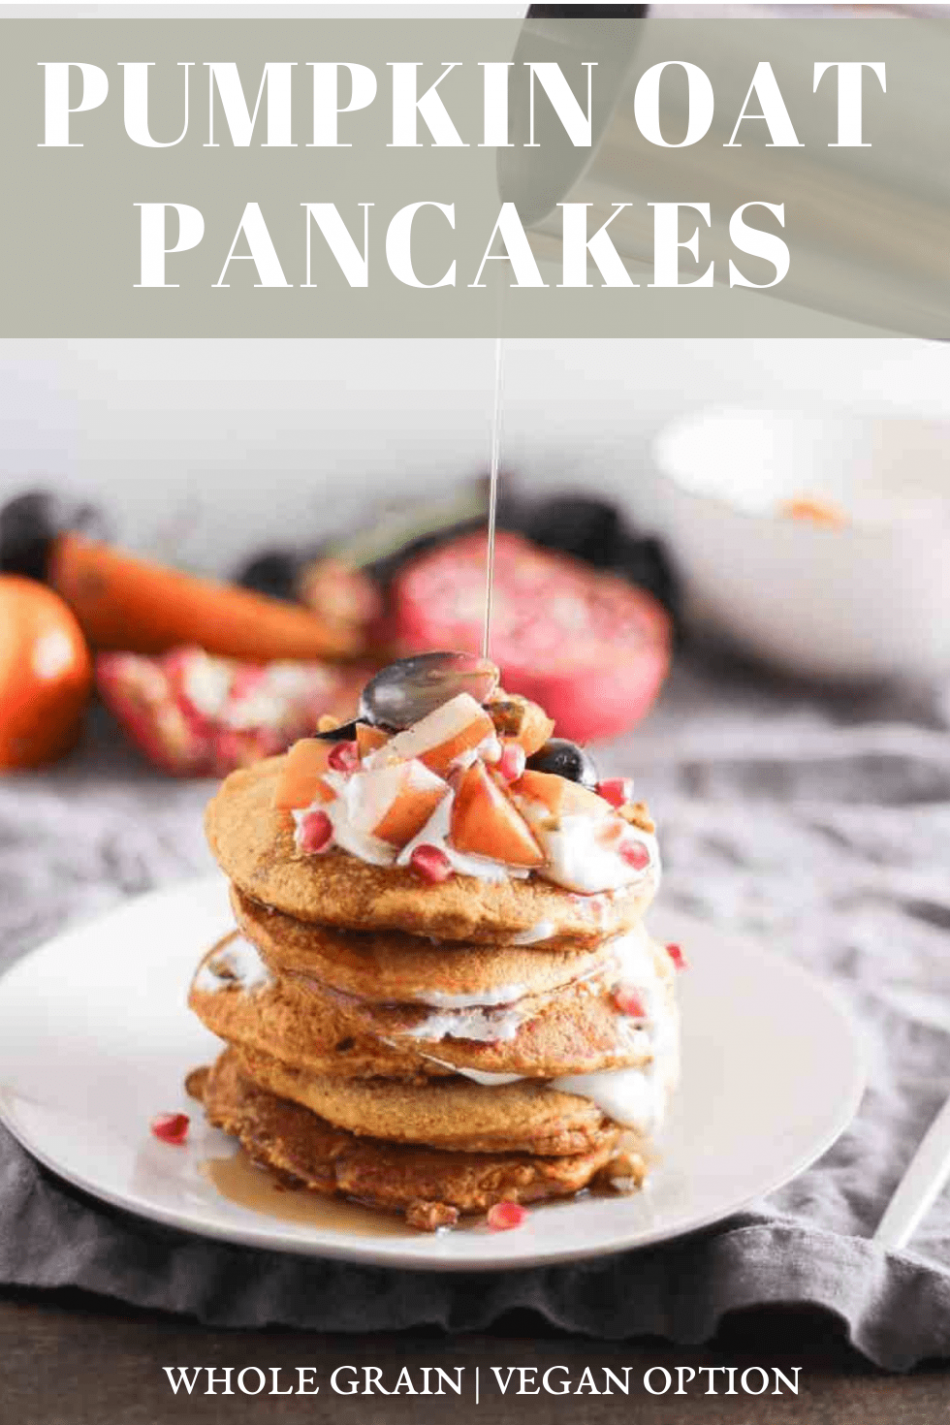 Pumpkin Oat Pancakes with Fruit and Yogurt - recipes pancakes healthy